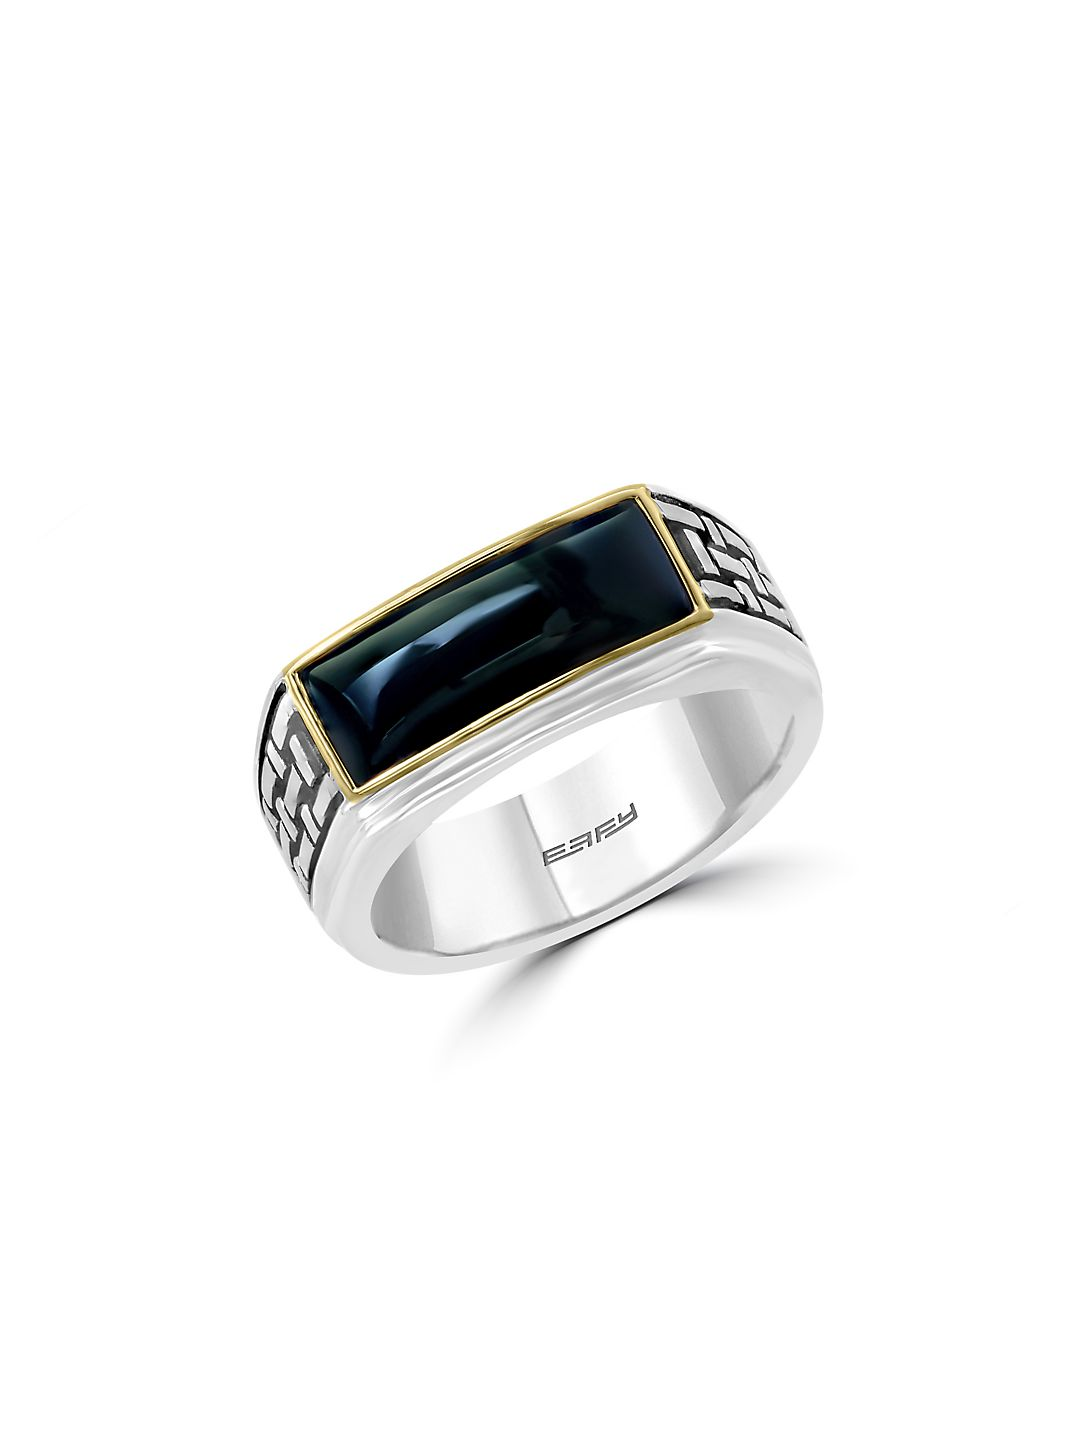 Gento 925 Sterling Silver, Onyx & 14K Yellow Gold Ring